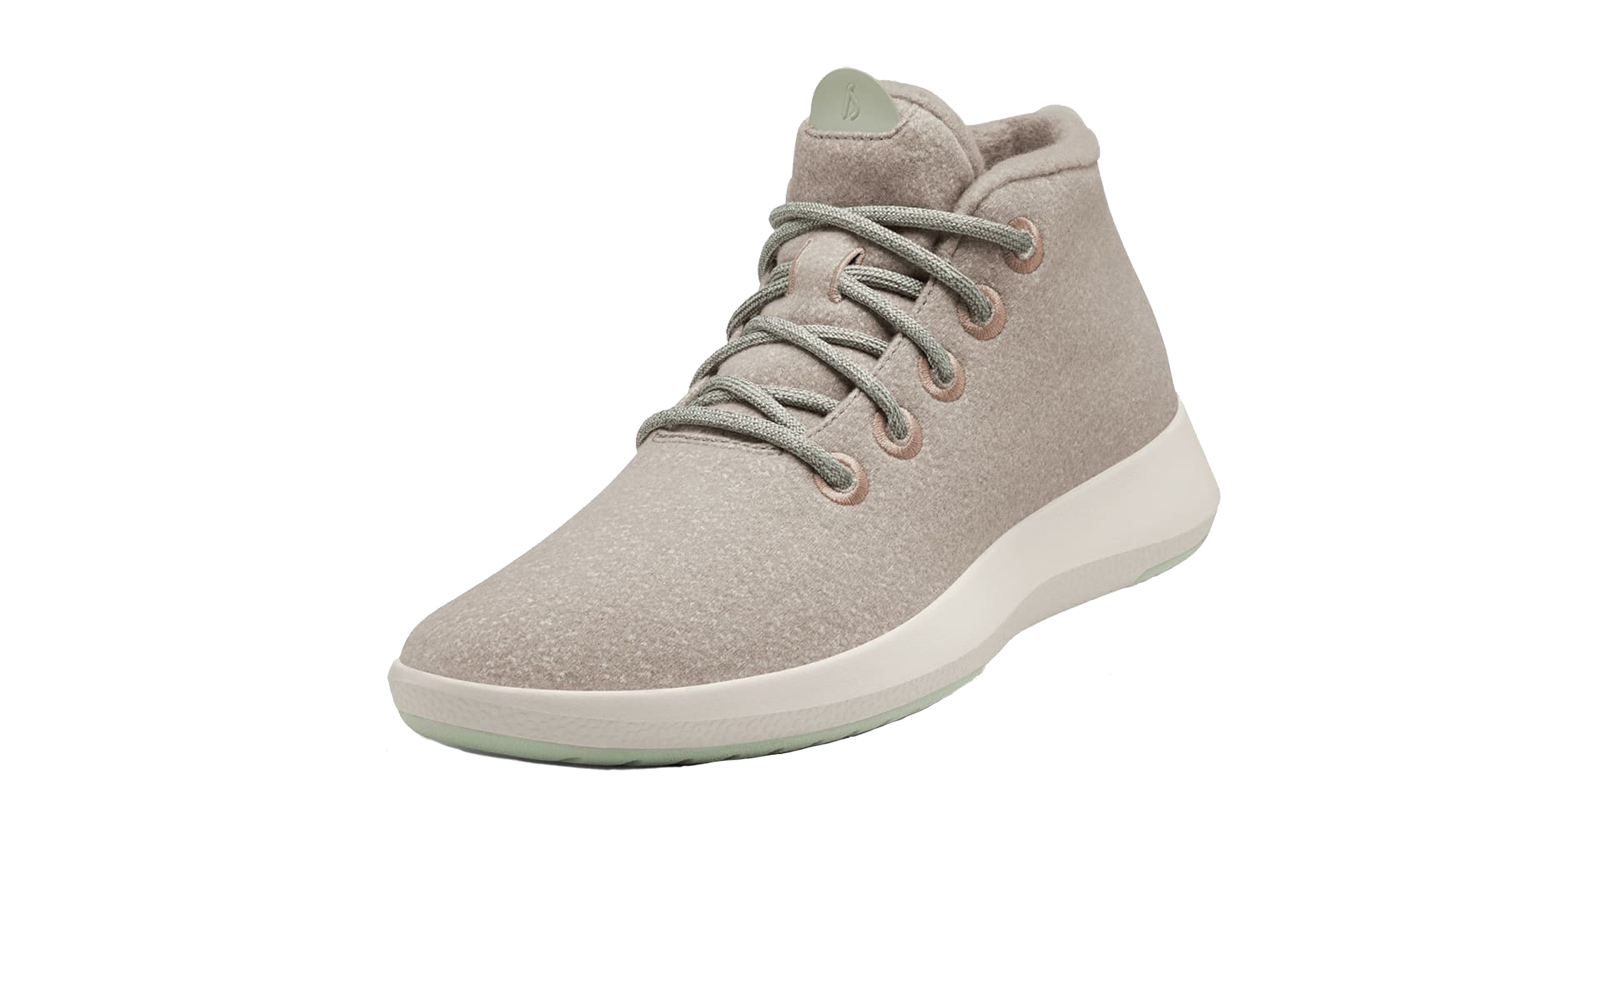 Allbirds Women's Wool Runner-up Mizzles Fog